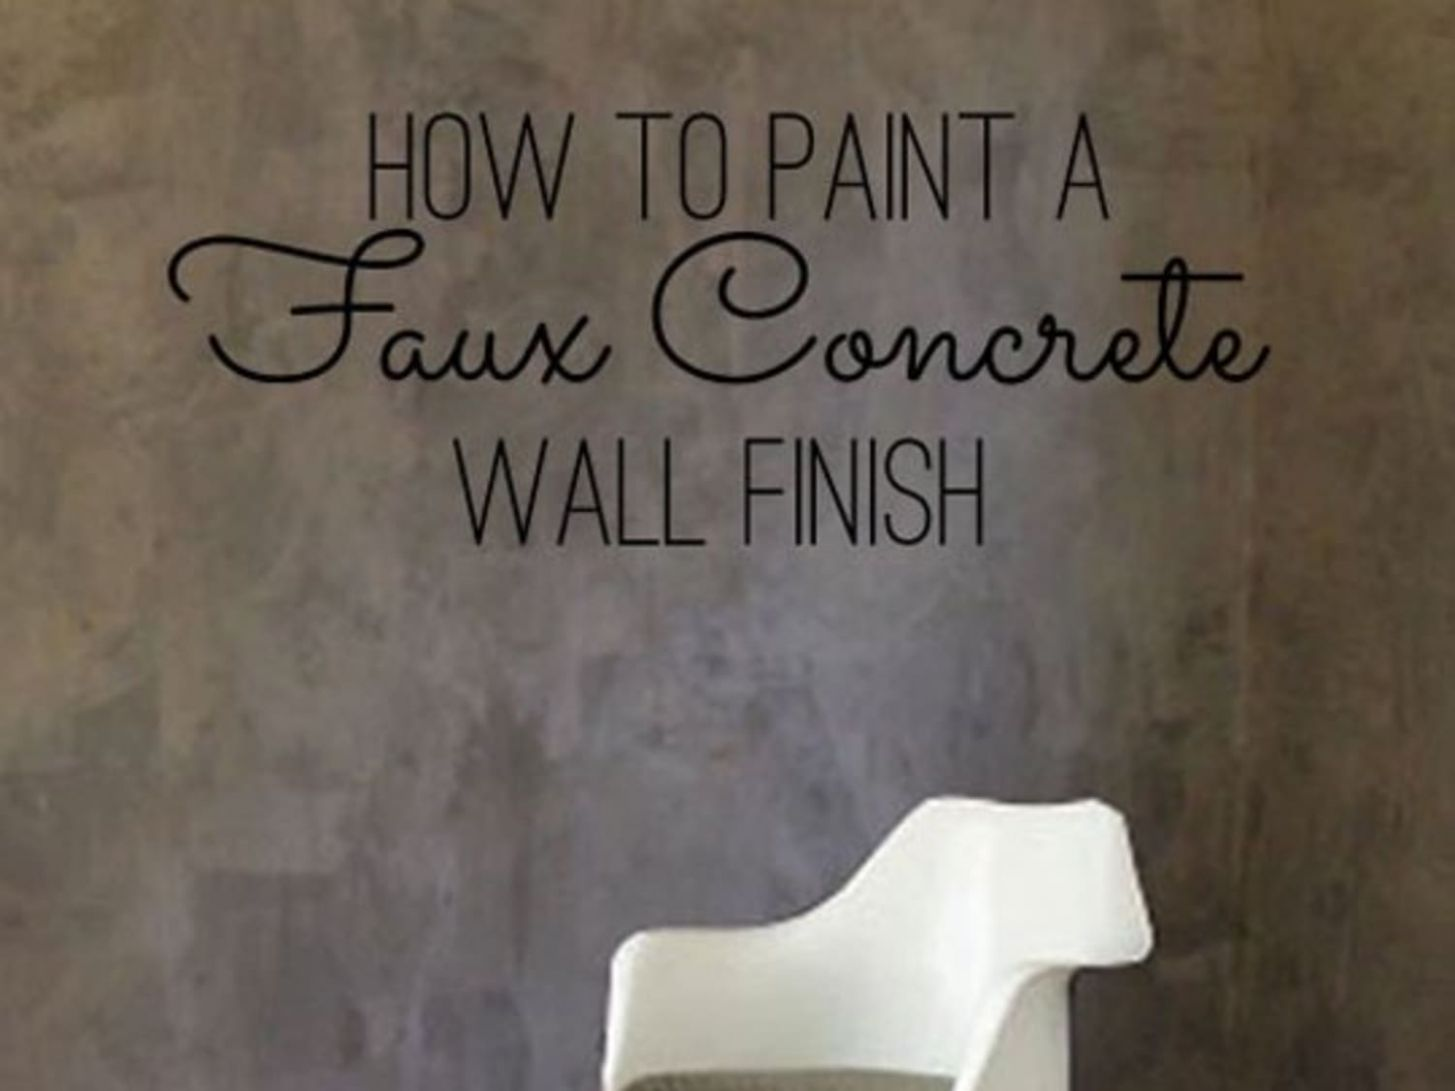 DIY Home Decor: How To Paint a Faux Concrete Wall Finish ..